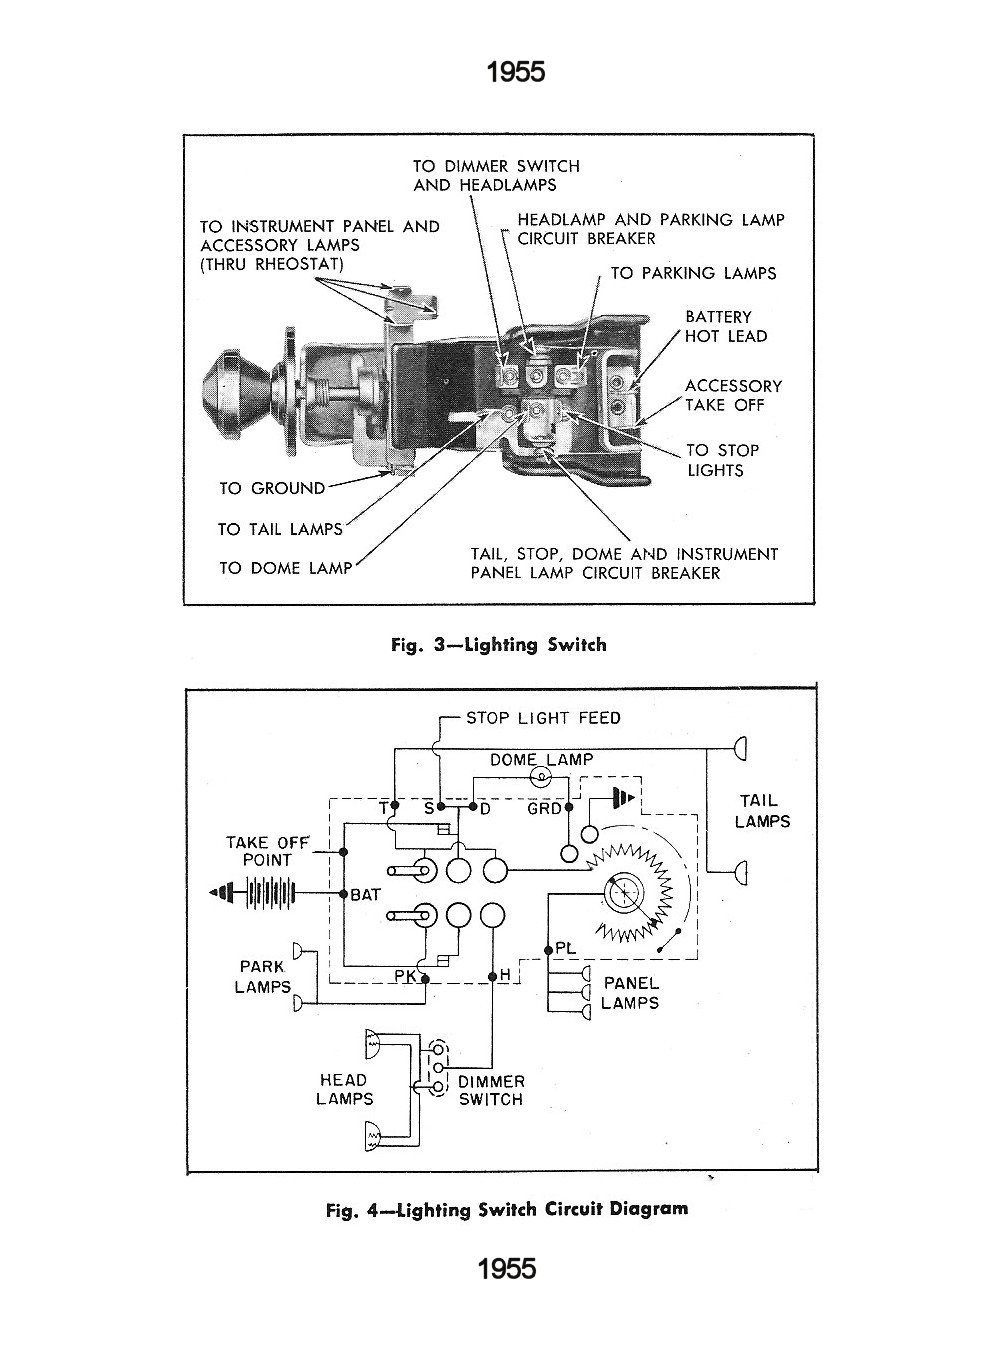 52 Ford F1 Wiring | Wiring Diagram  Falcon Wiring Diagram on 1963 falcon speedometer, 1963 falcon exhaust, 1963 falcon brakes, 1963 falcon wheels, 1963 falcon transmission, 1963 falcon battery, 1963 falcon frame, 1963 falcon steering, 1963 falcon ignition coil, 1963 falcon seats, 1963 falcon cylinder head, 1963 falcon suspension, 1963 falcon radio, 1963 falcon distributor, 1963 falcon fuel pump, 1963 falcon brochure, 1963 falcon ford, 1963 falcon specifications, 1963 falcon engine, 1963 falcon radiator,